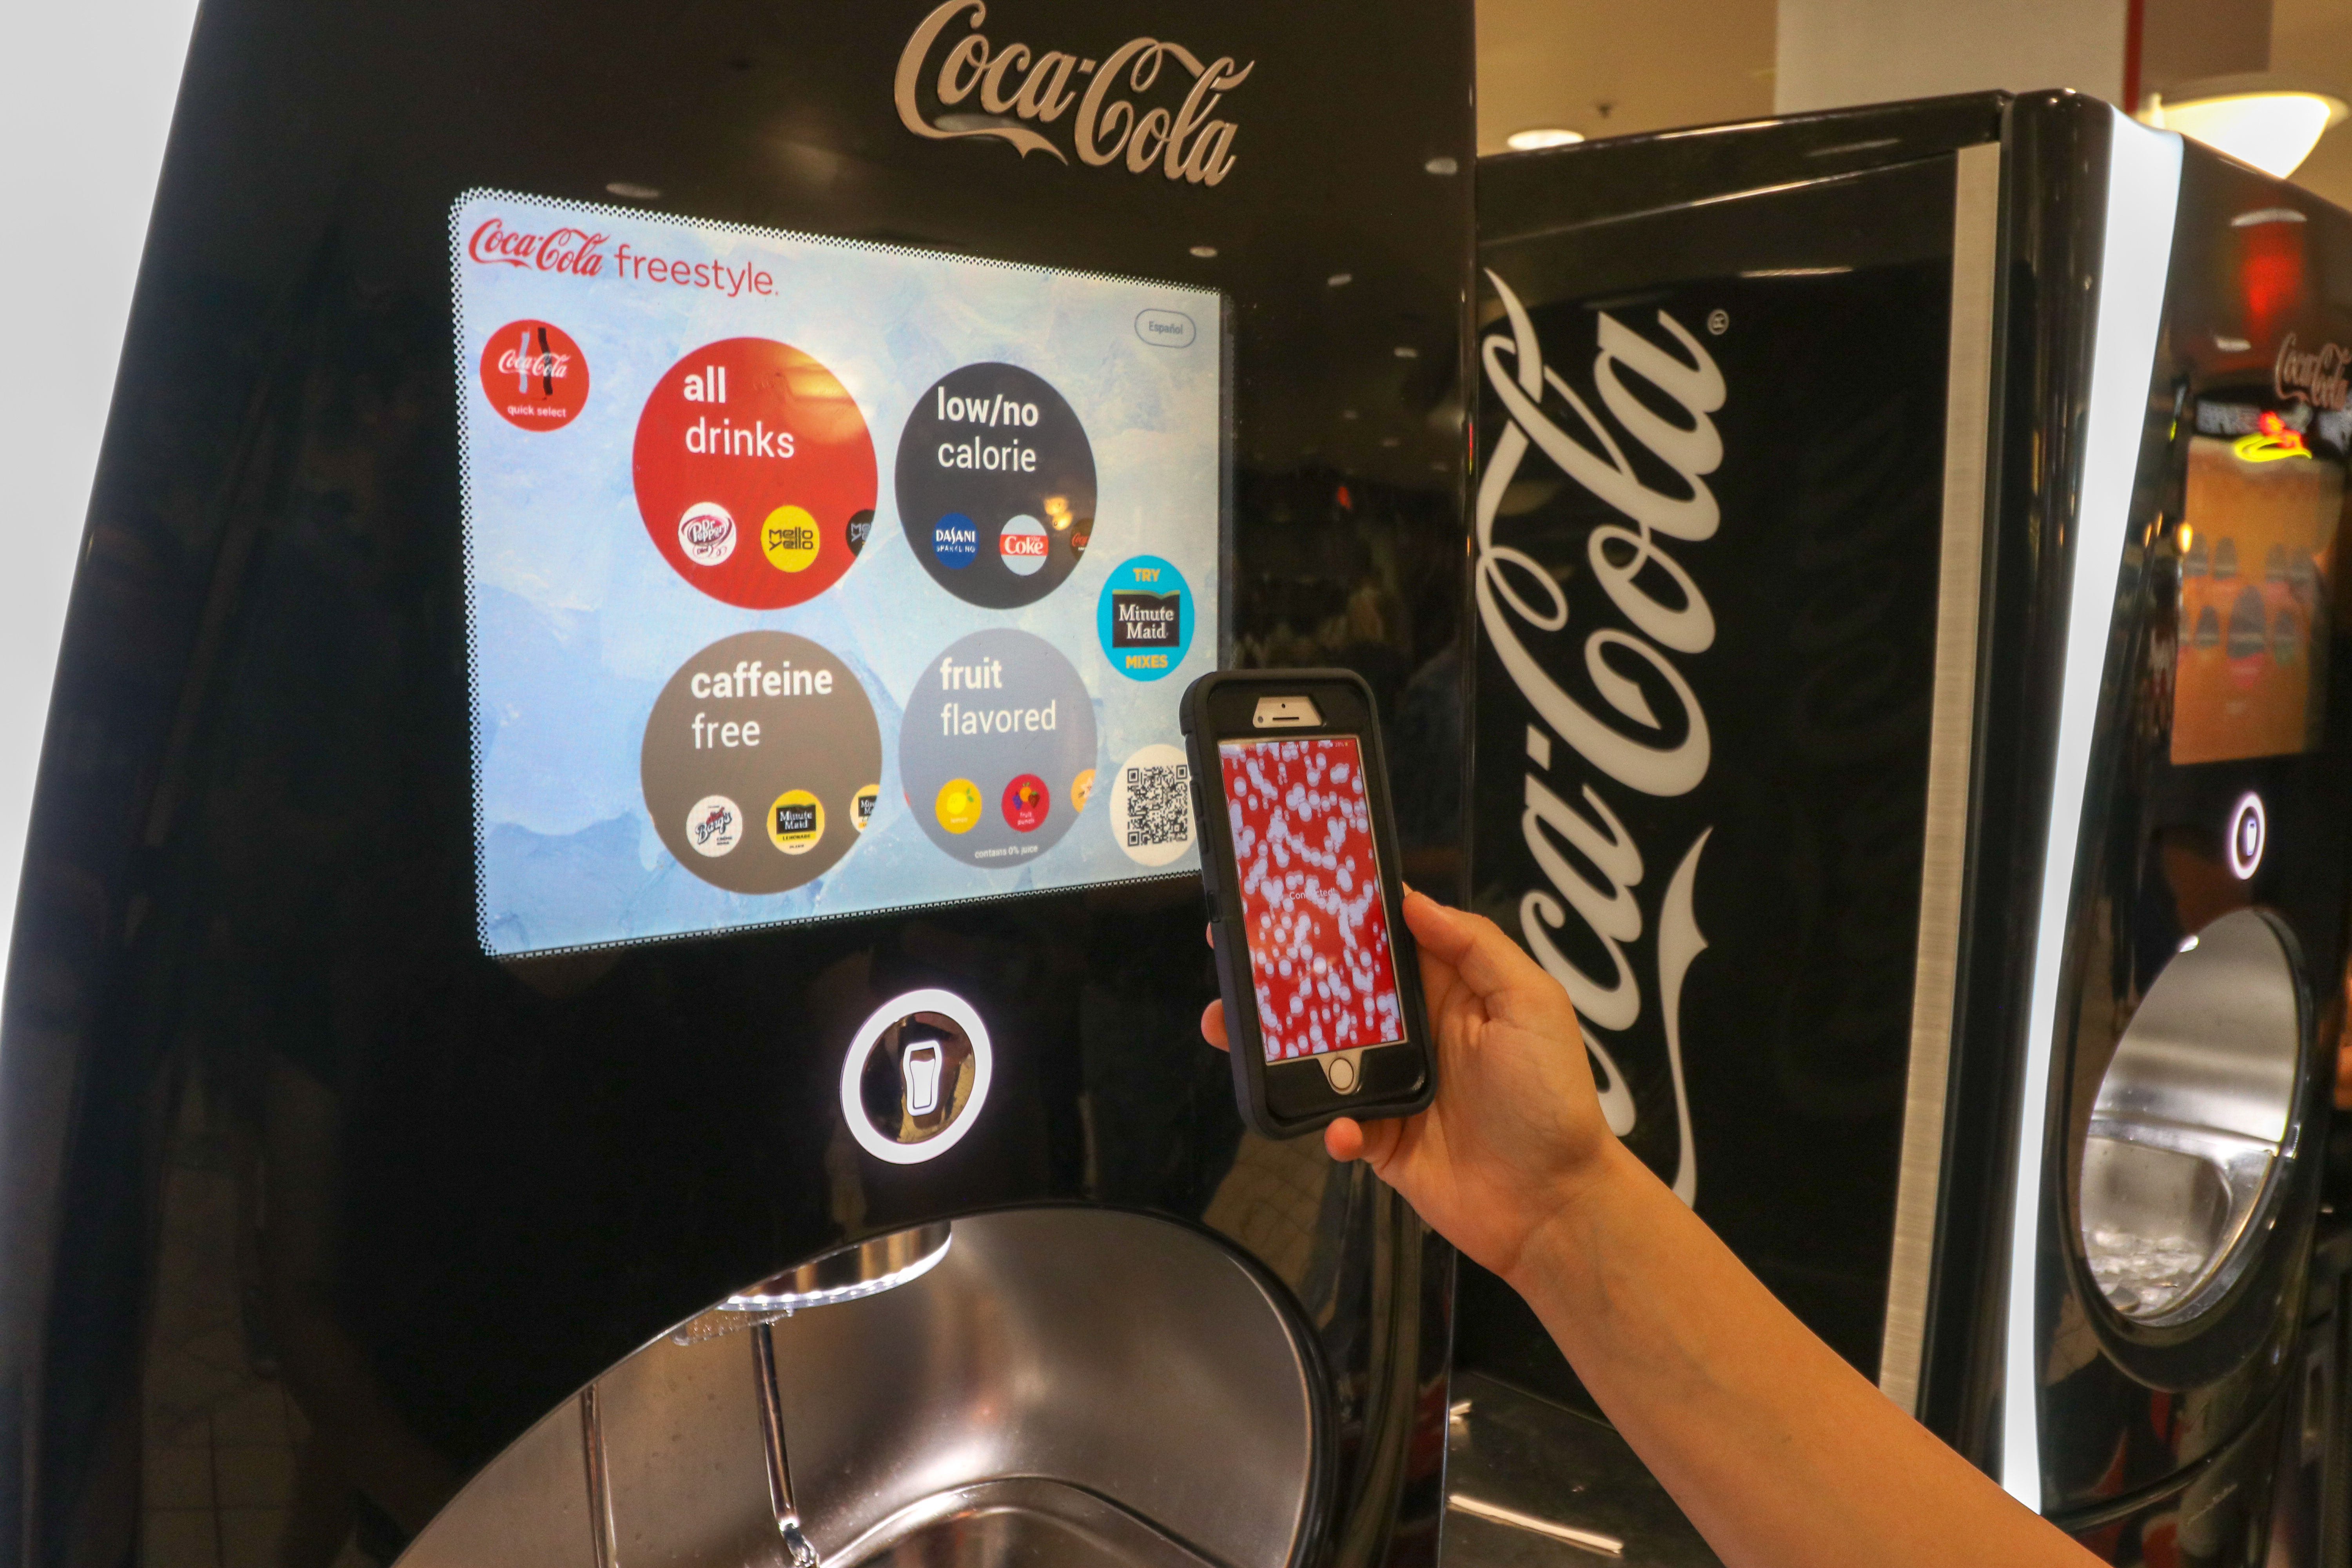 Coca-Cola Freestyle lets students customize their soda - The Daily